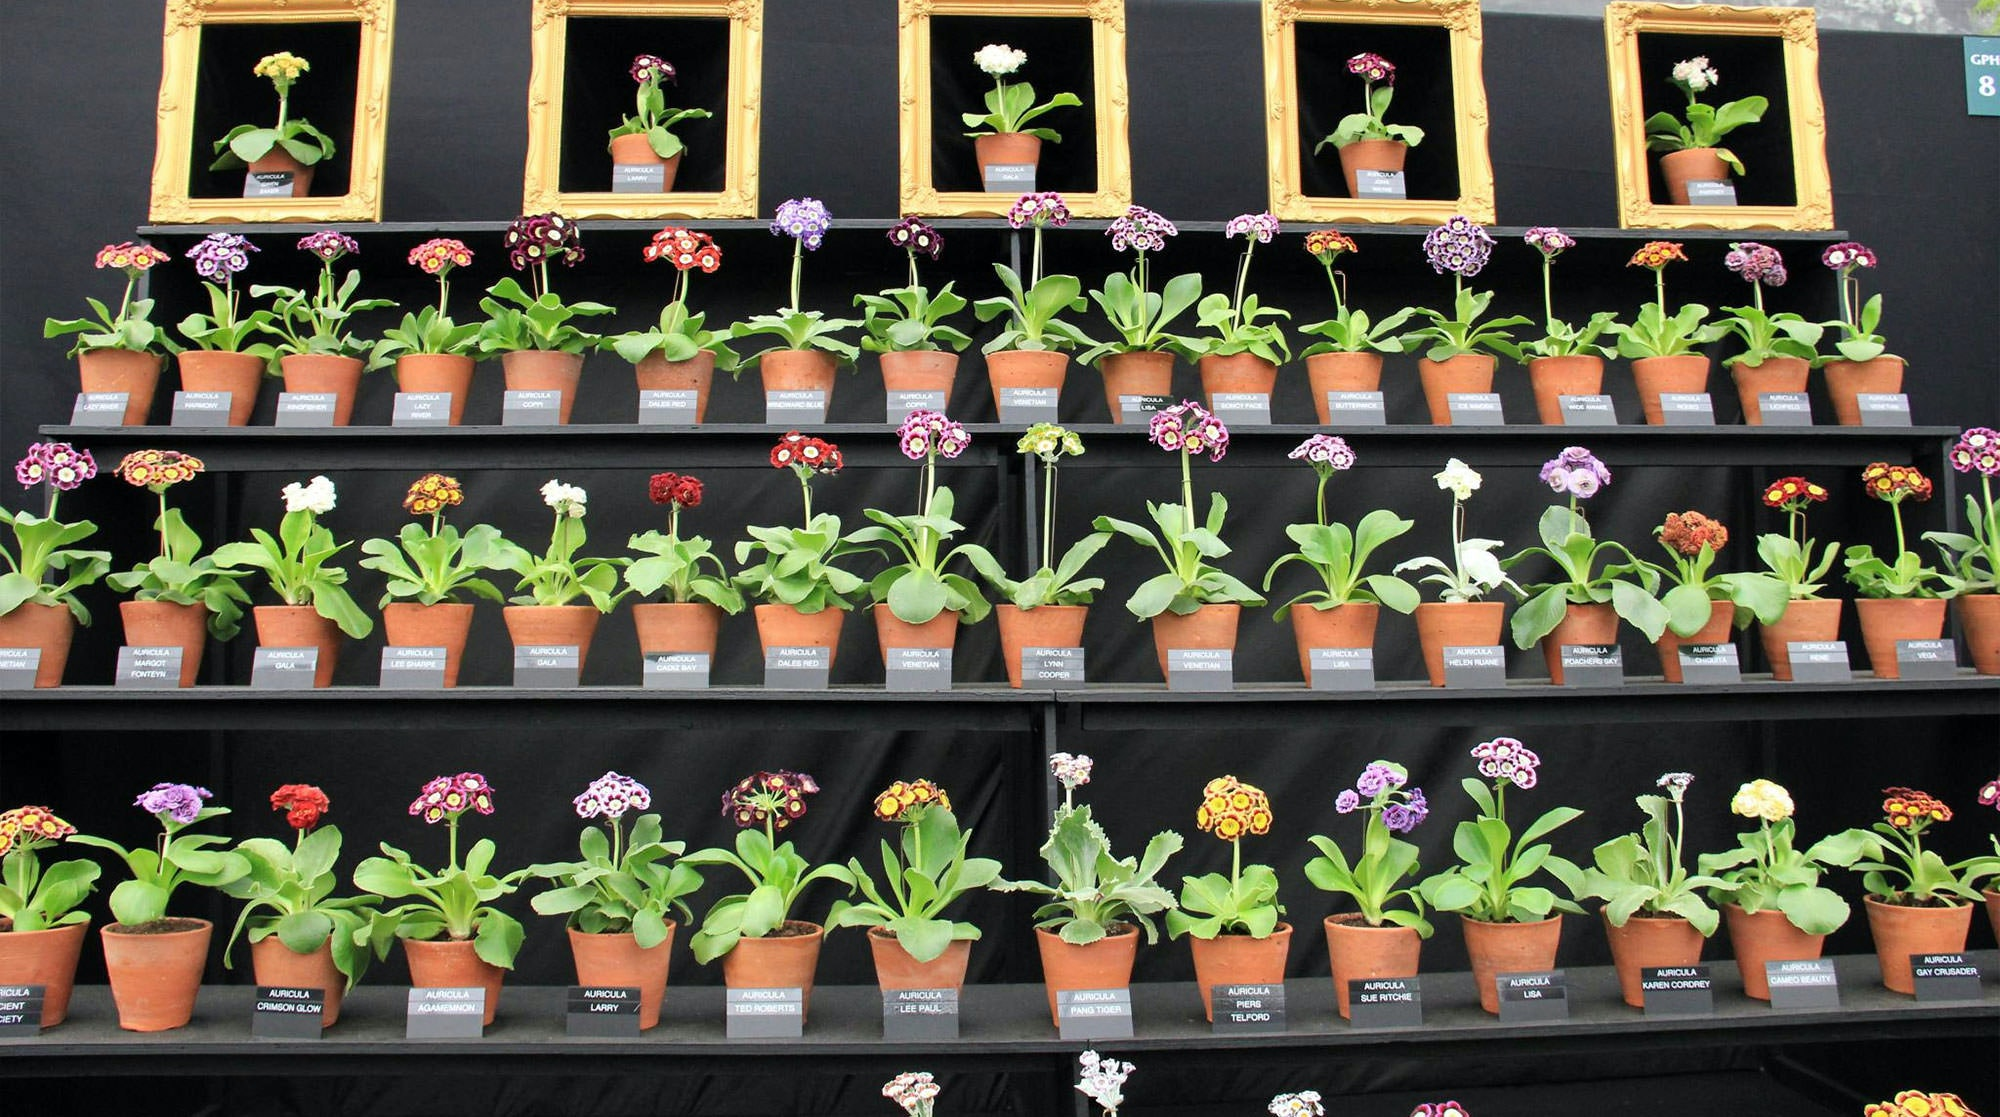 Where To Stay For Chelsea Flower Show An Expert Review The Plum Guide